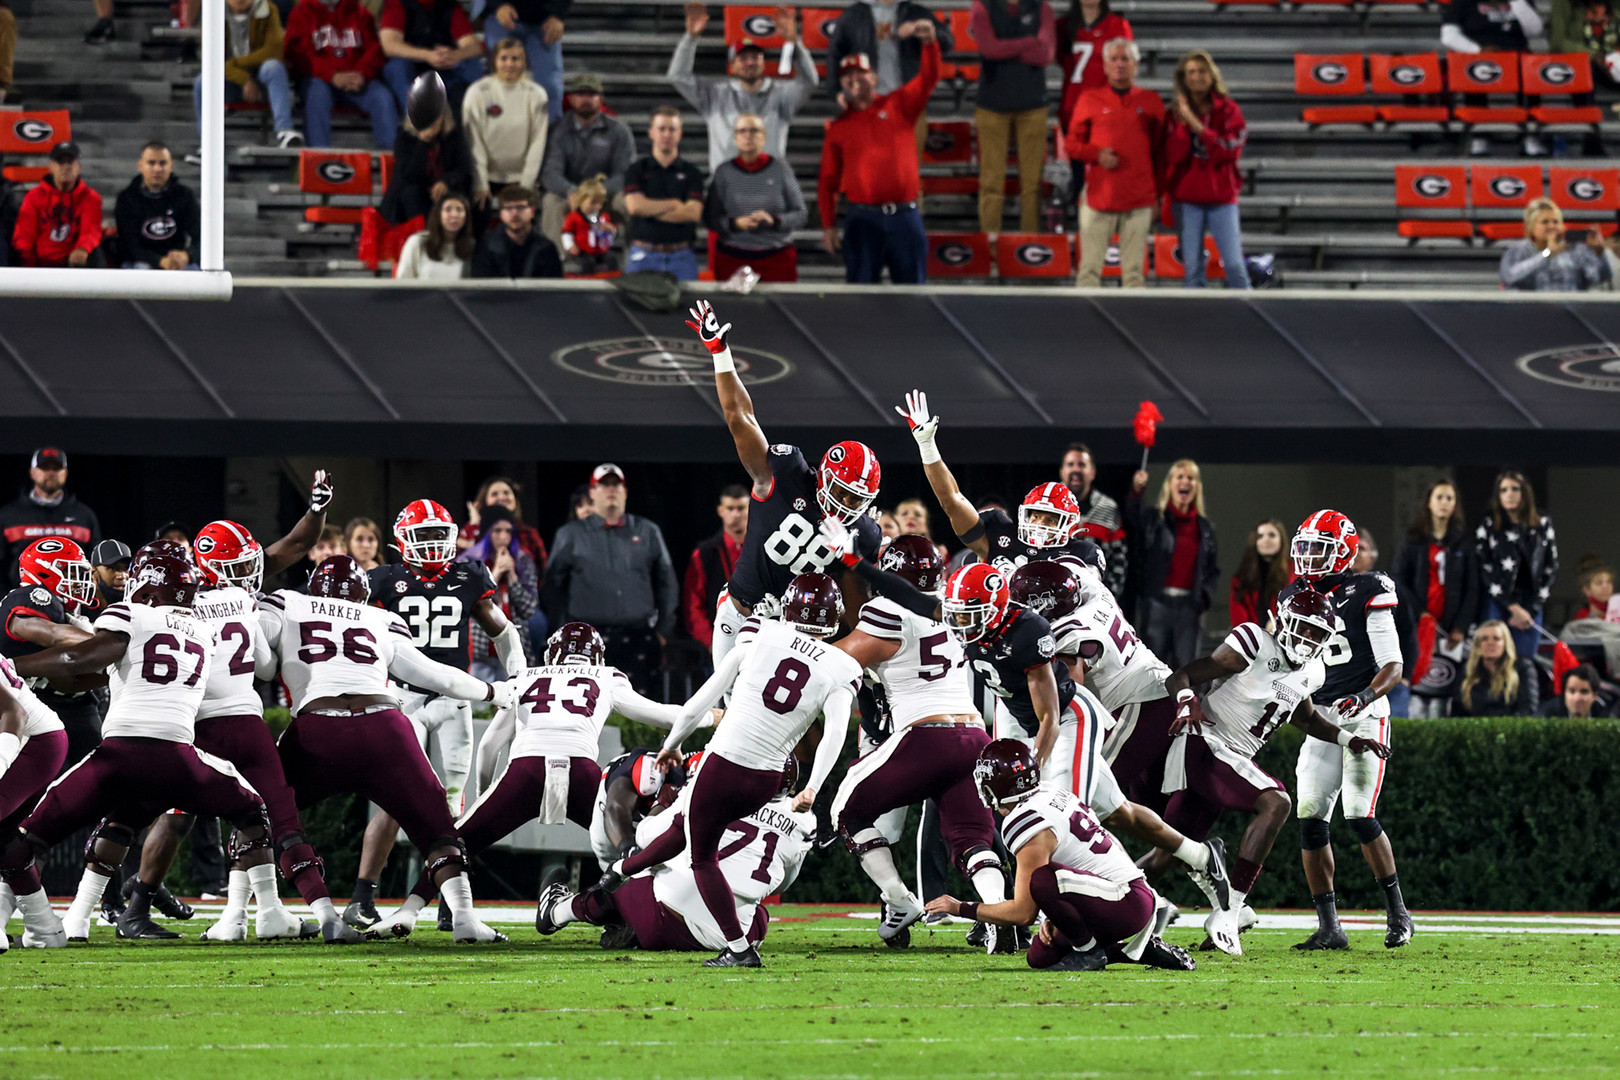 Scenes from the first half of the UGA versus Mississippi State football game in Athens, Georgia on Saturday, Nov. 21, 2020. At halftime, the game was tied 17-17.